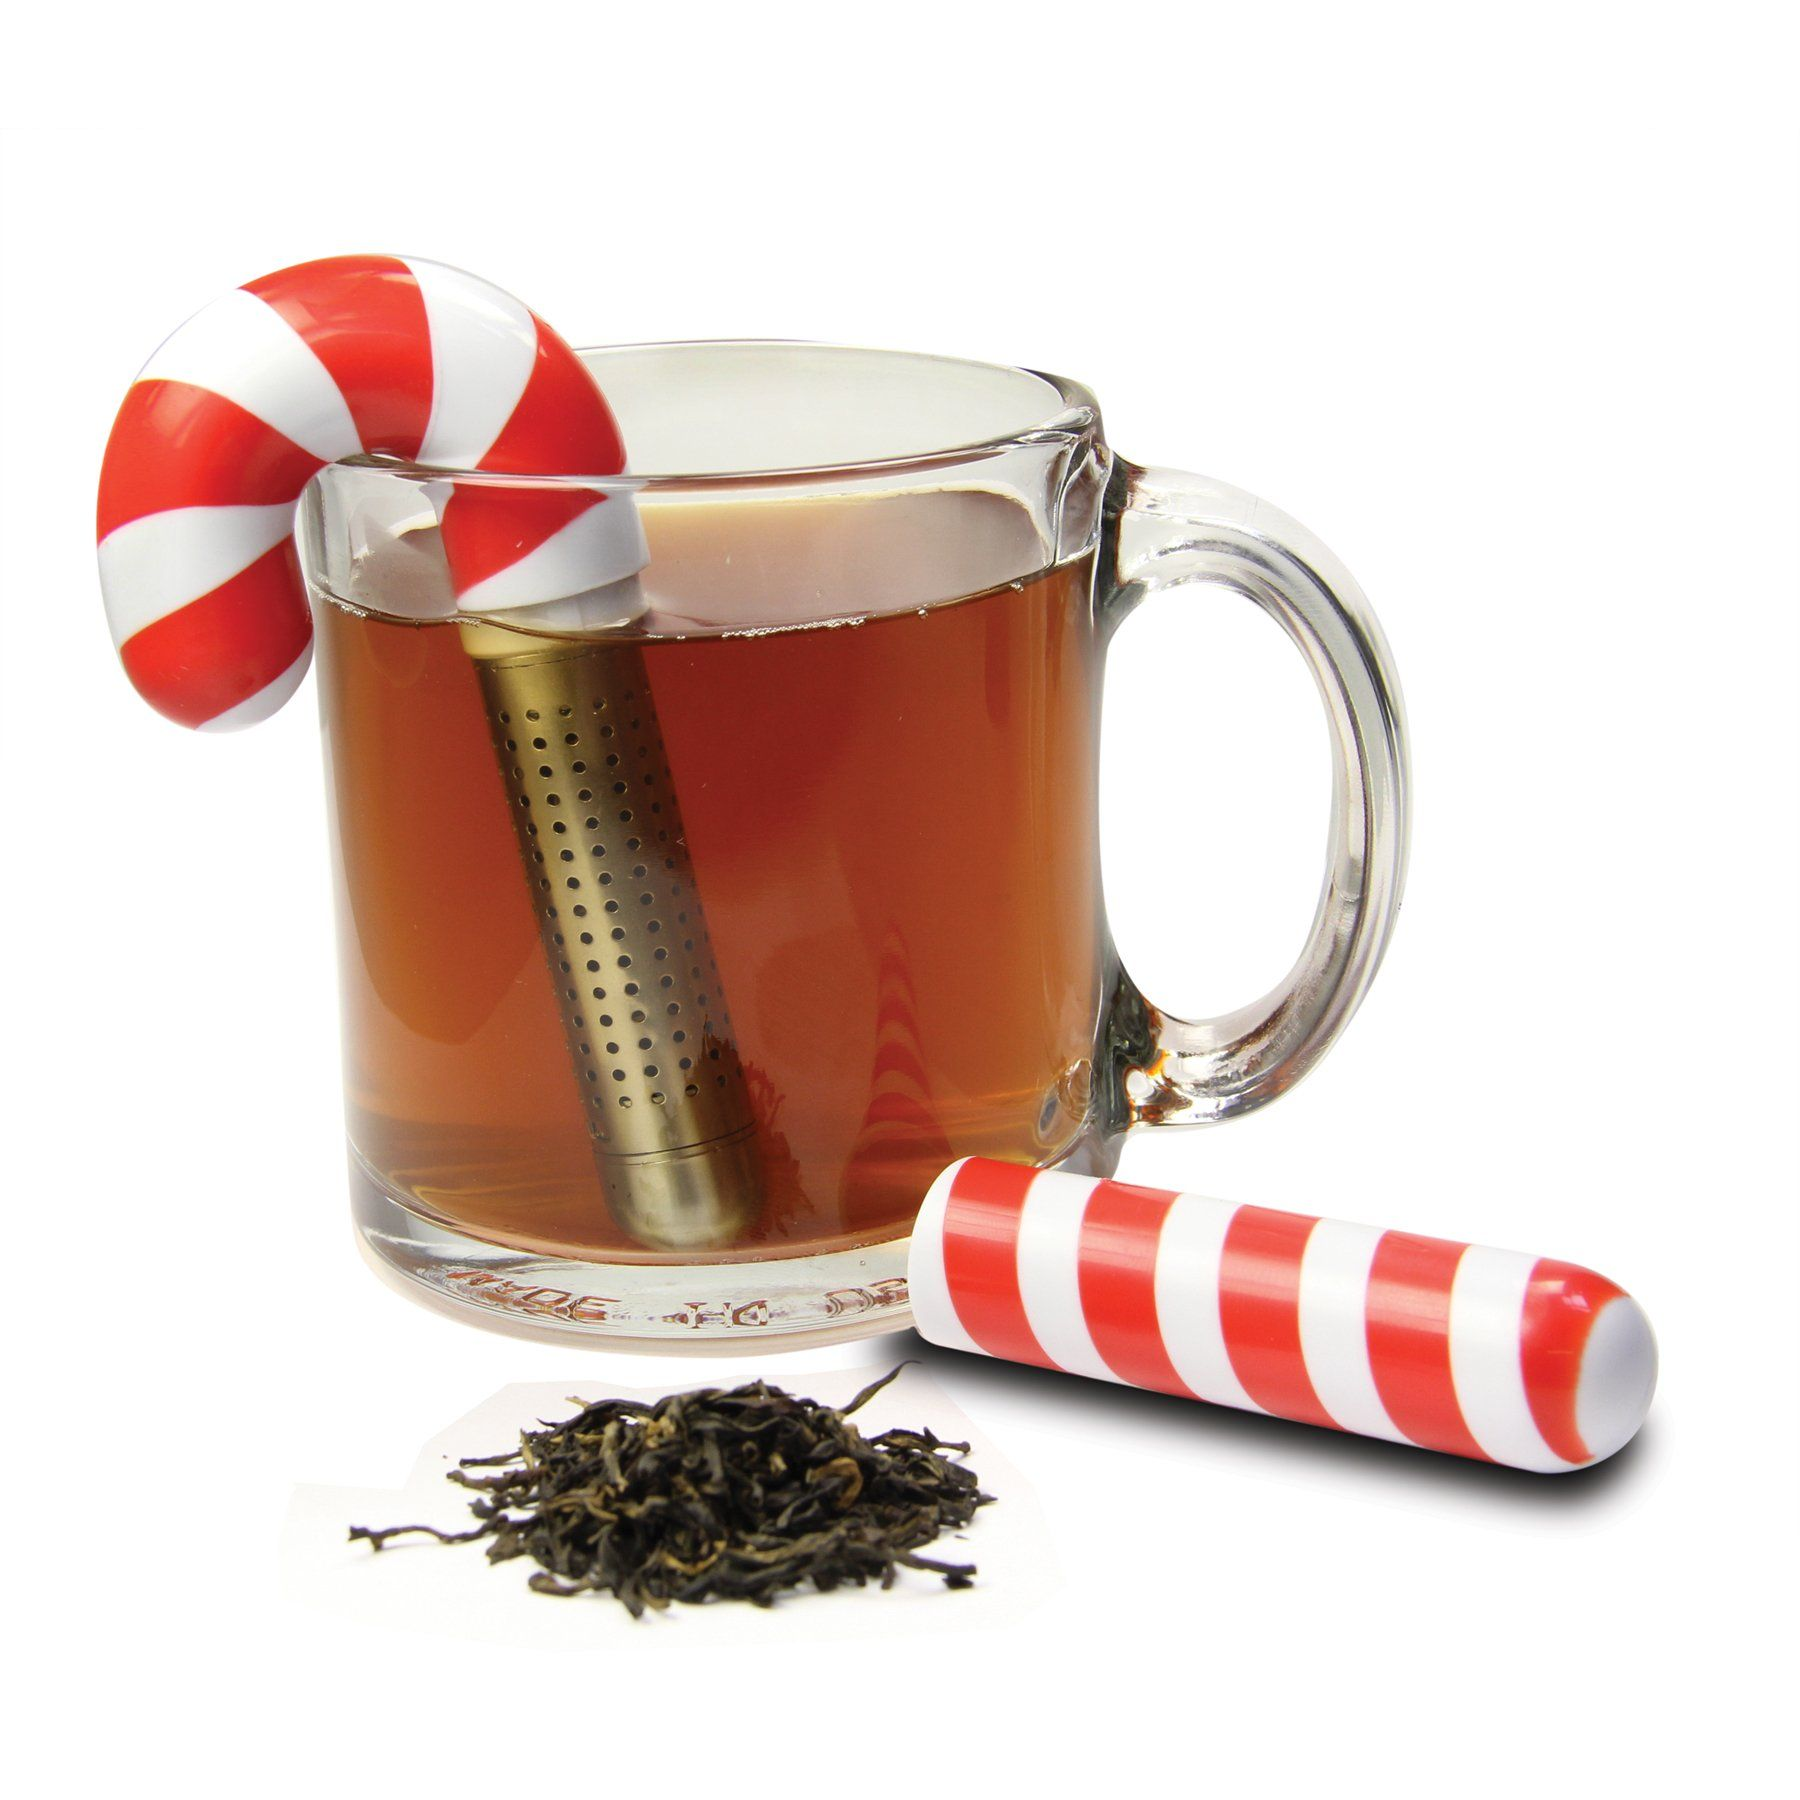 DCI Candy Cane Tea Infuser Tea Ball Strainers